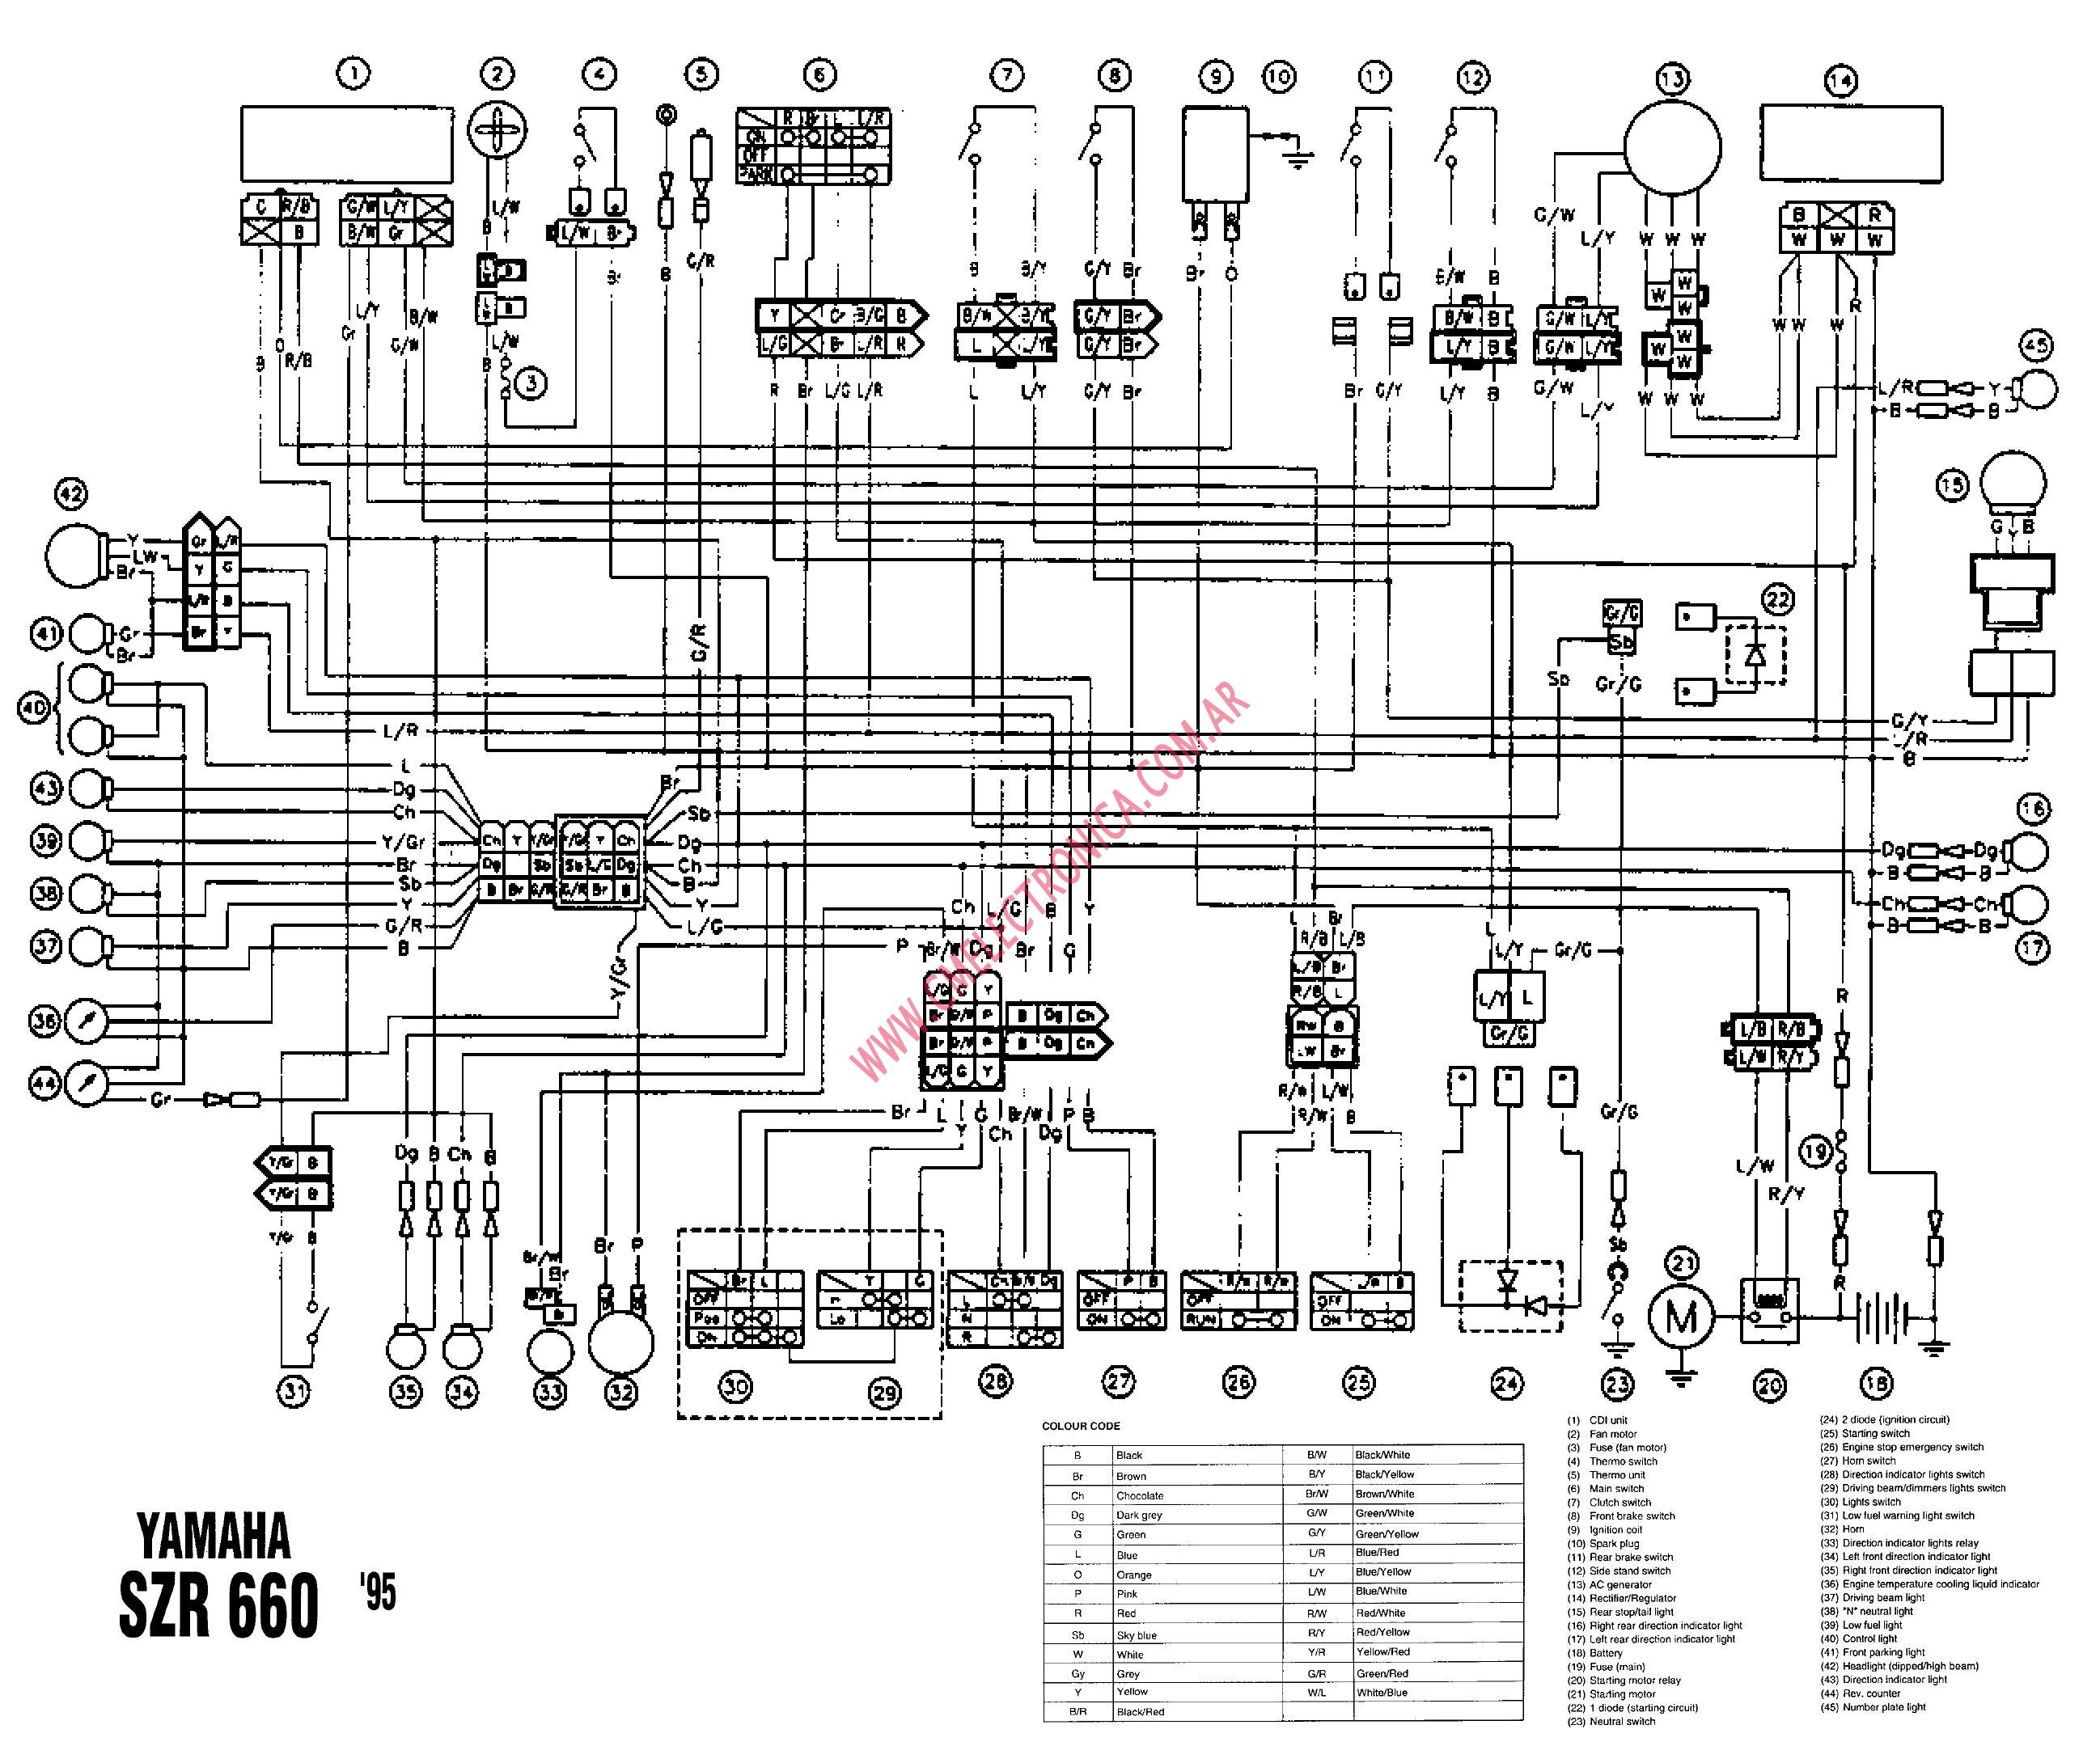 2008 yamaha rhino wiring diagram  u2022 wiring diagram for free